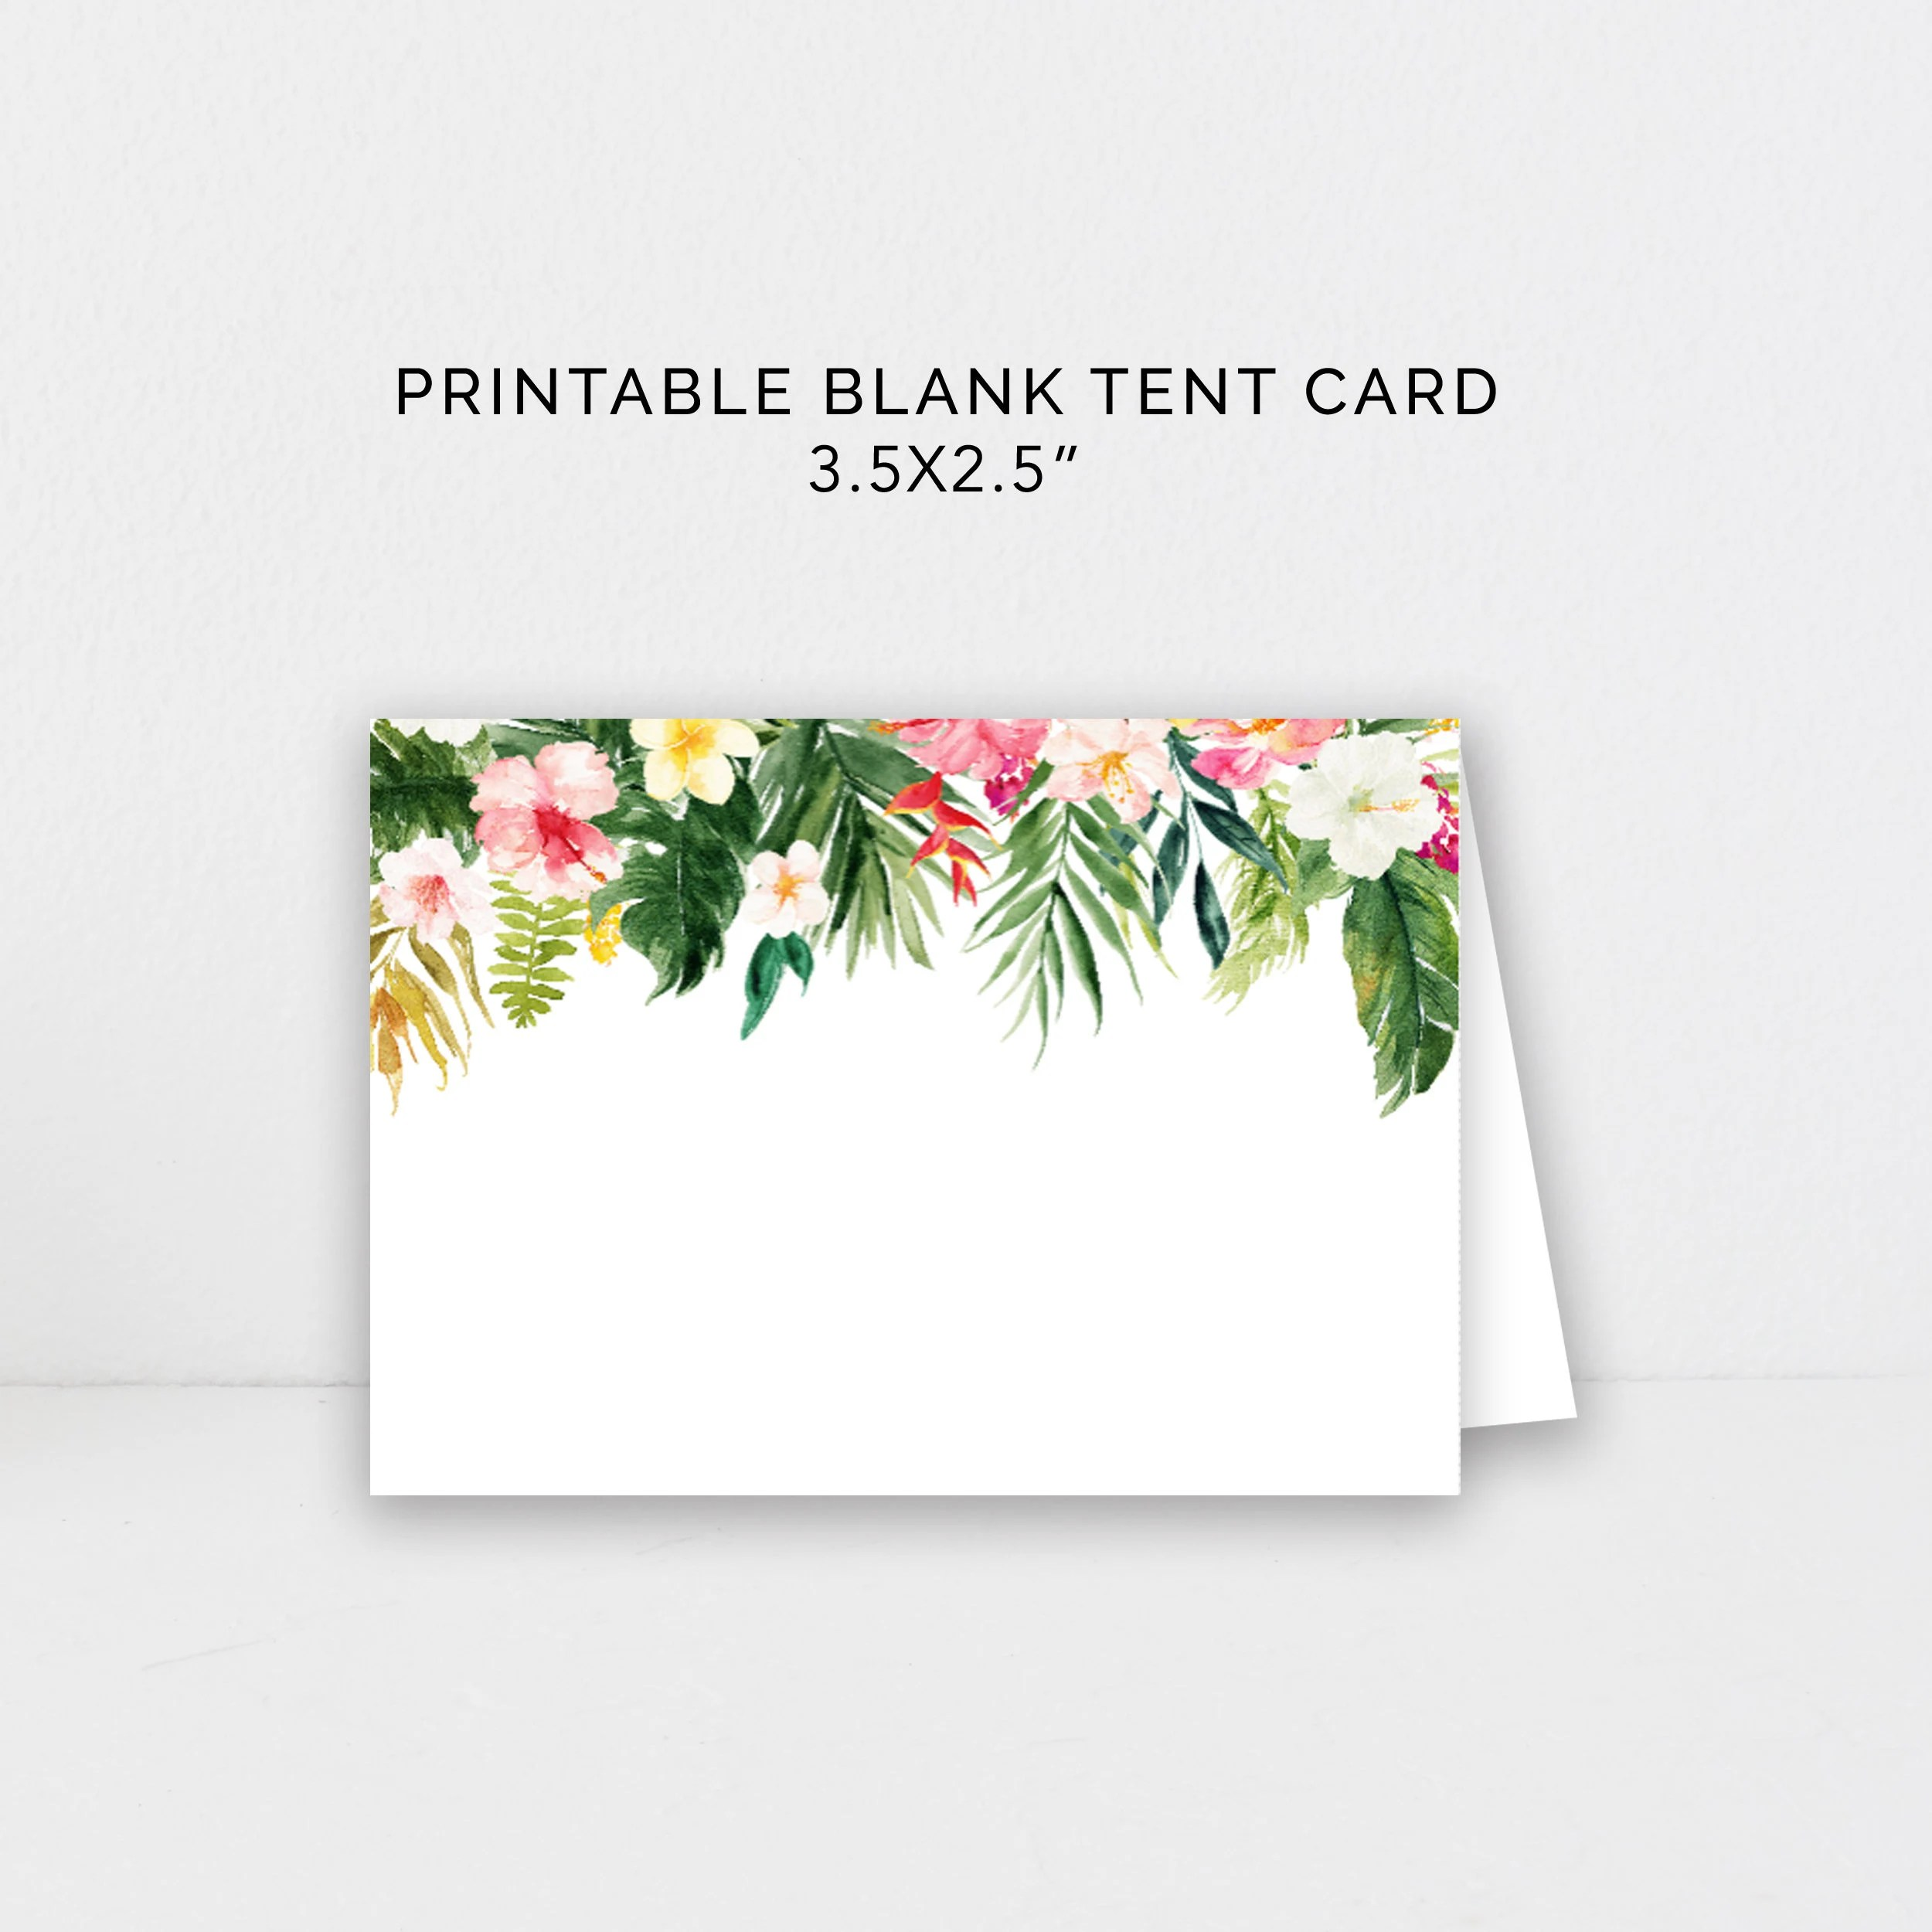 Tropical Food Cards Printable, Blank Tent Cards, Buffet Cards